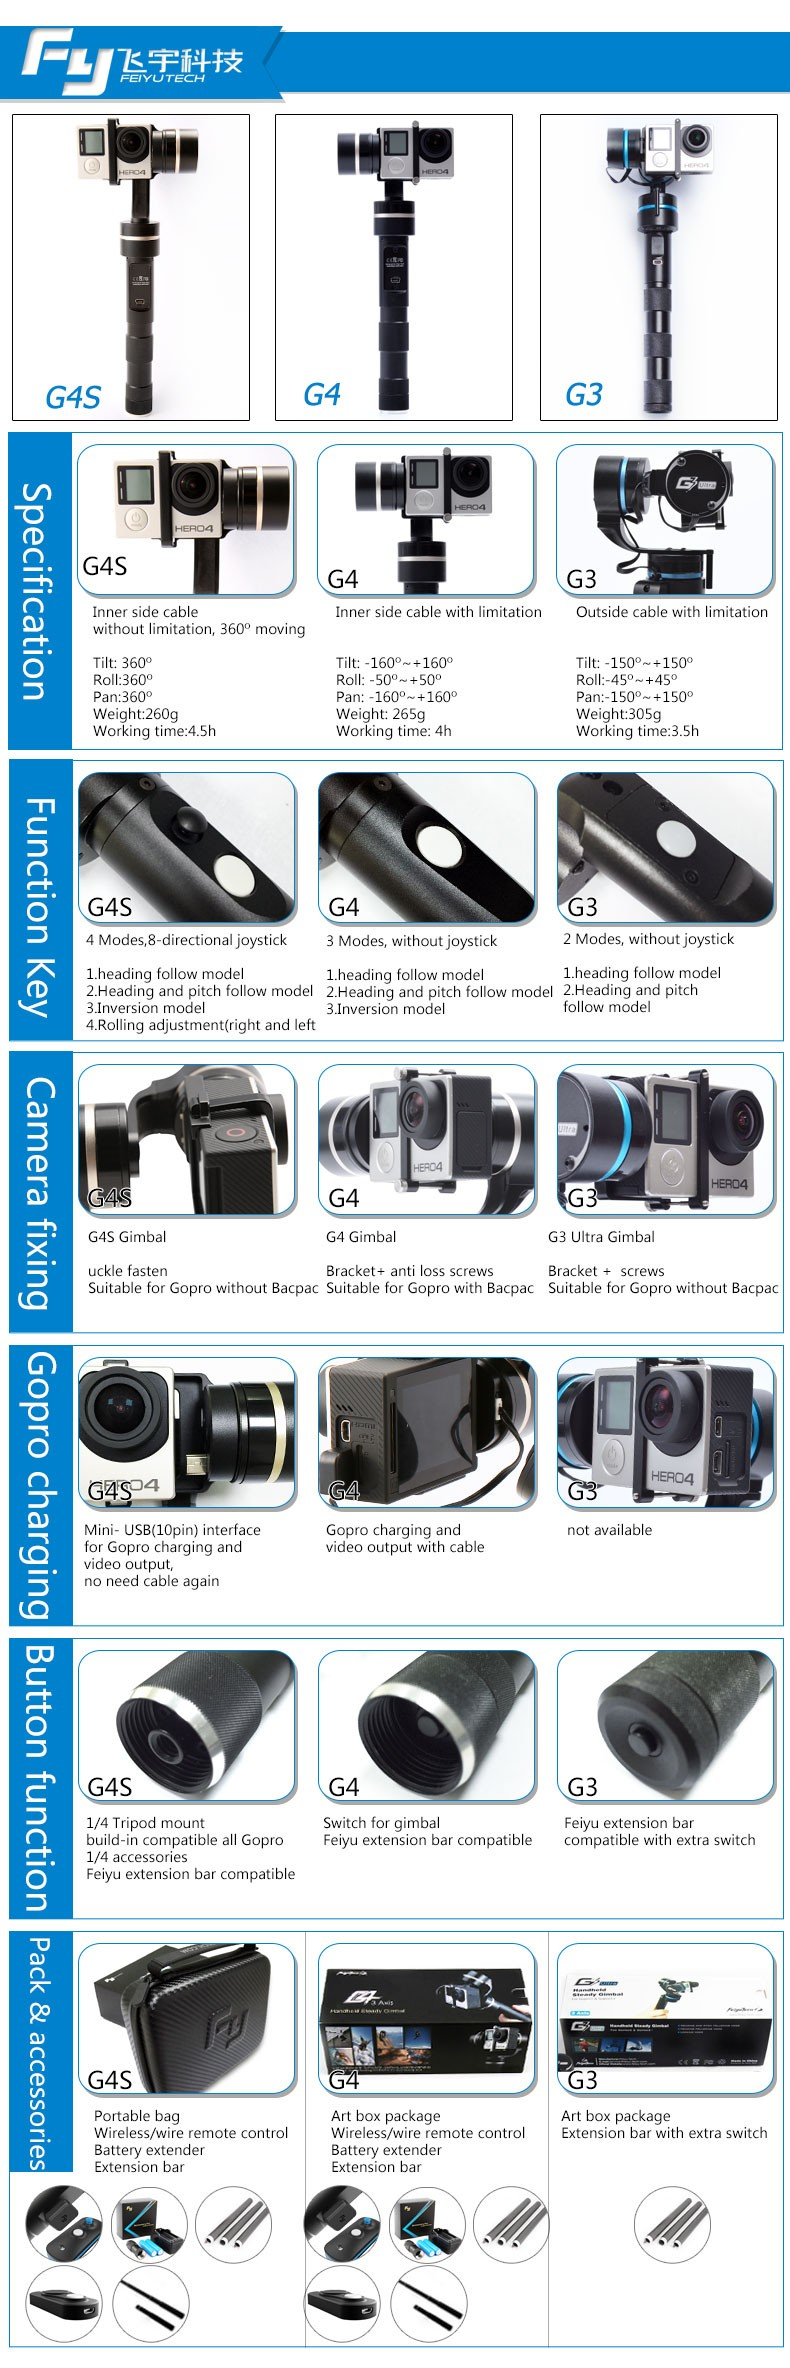 Compare Feiyu Tech Handheld Gimbal From G3, G4 to G4S, we do a lot innovation1